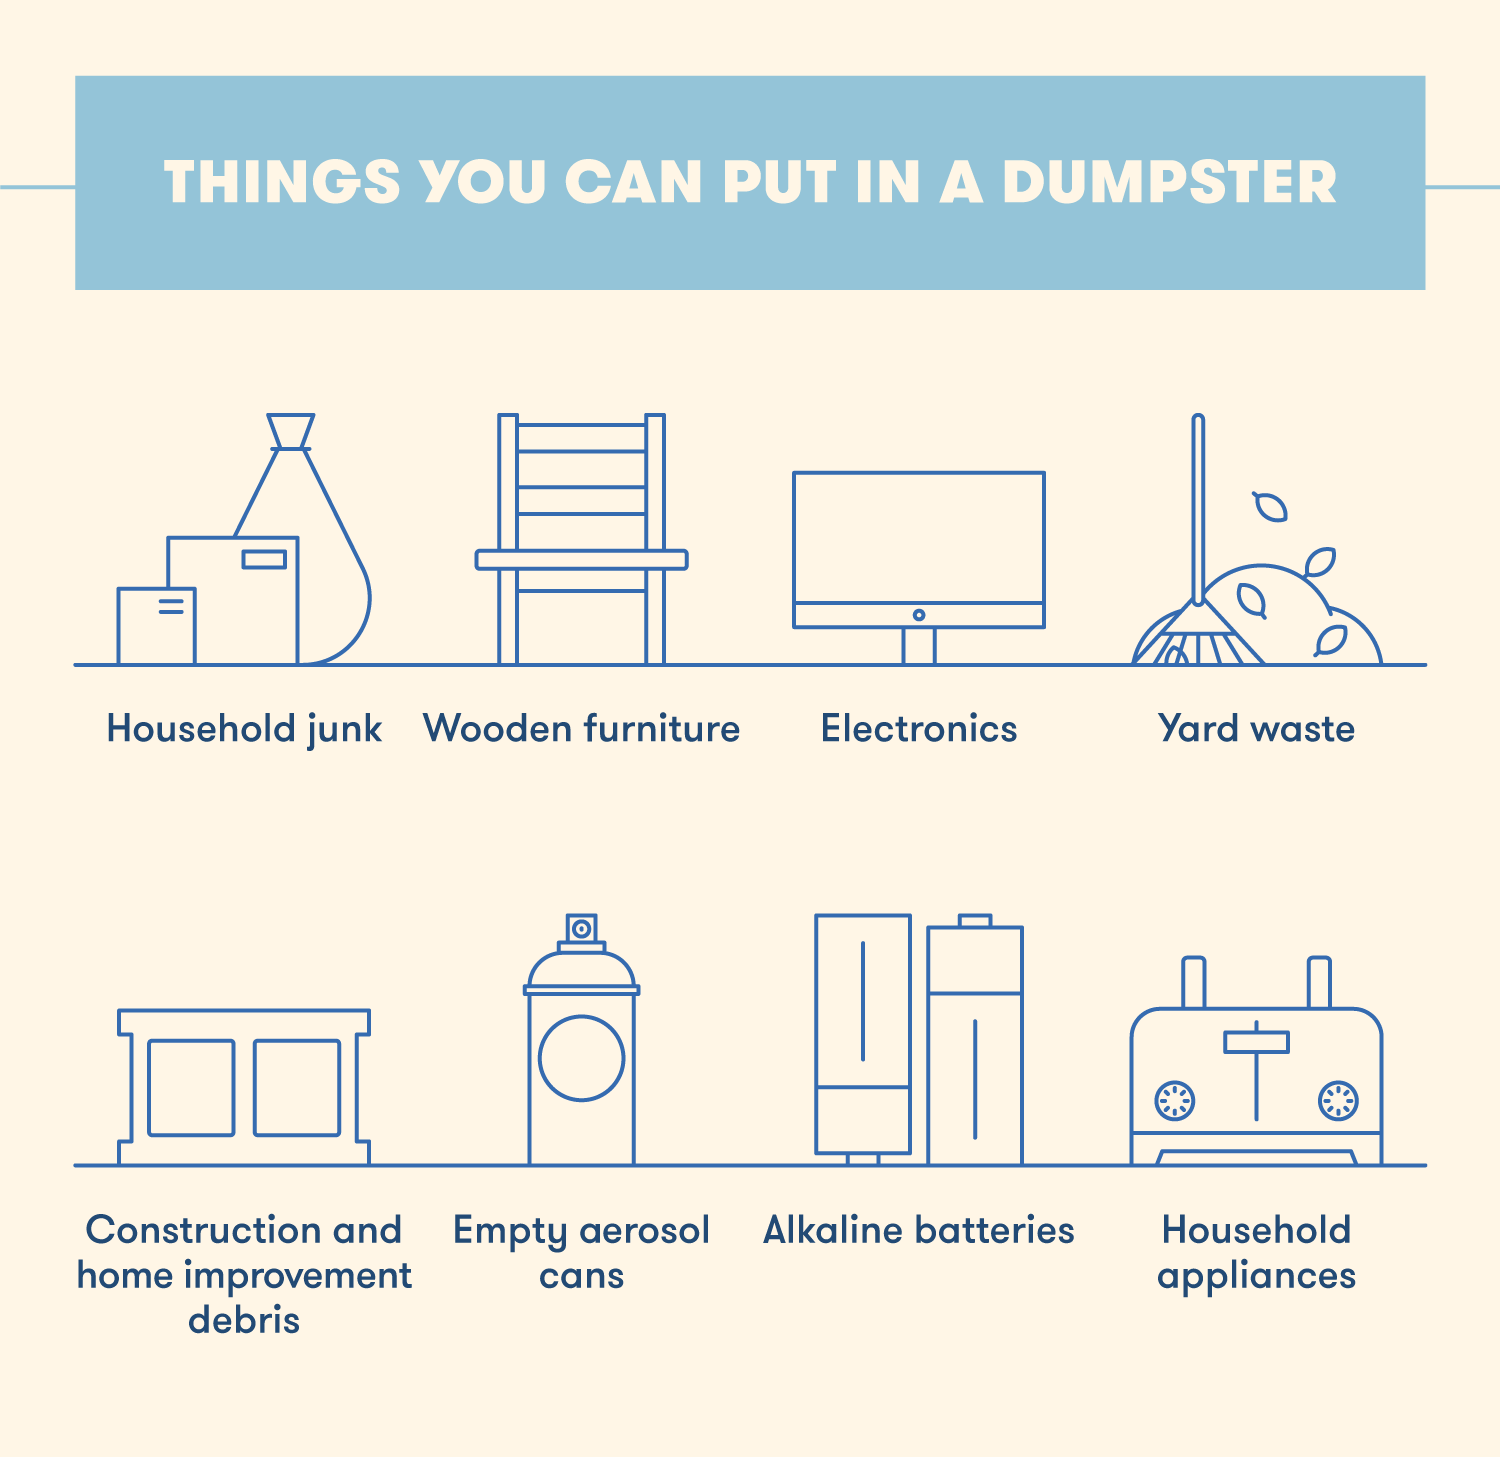 Graphic showing what you can put in a dumpster, including electronics, yard waste, alkaline batteries, household appliances, and household junk.